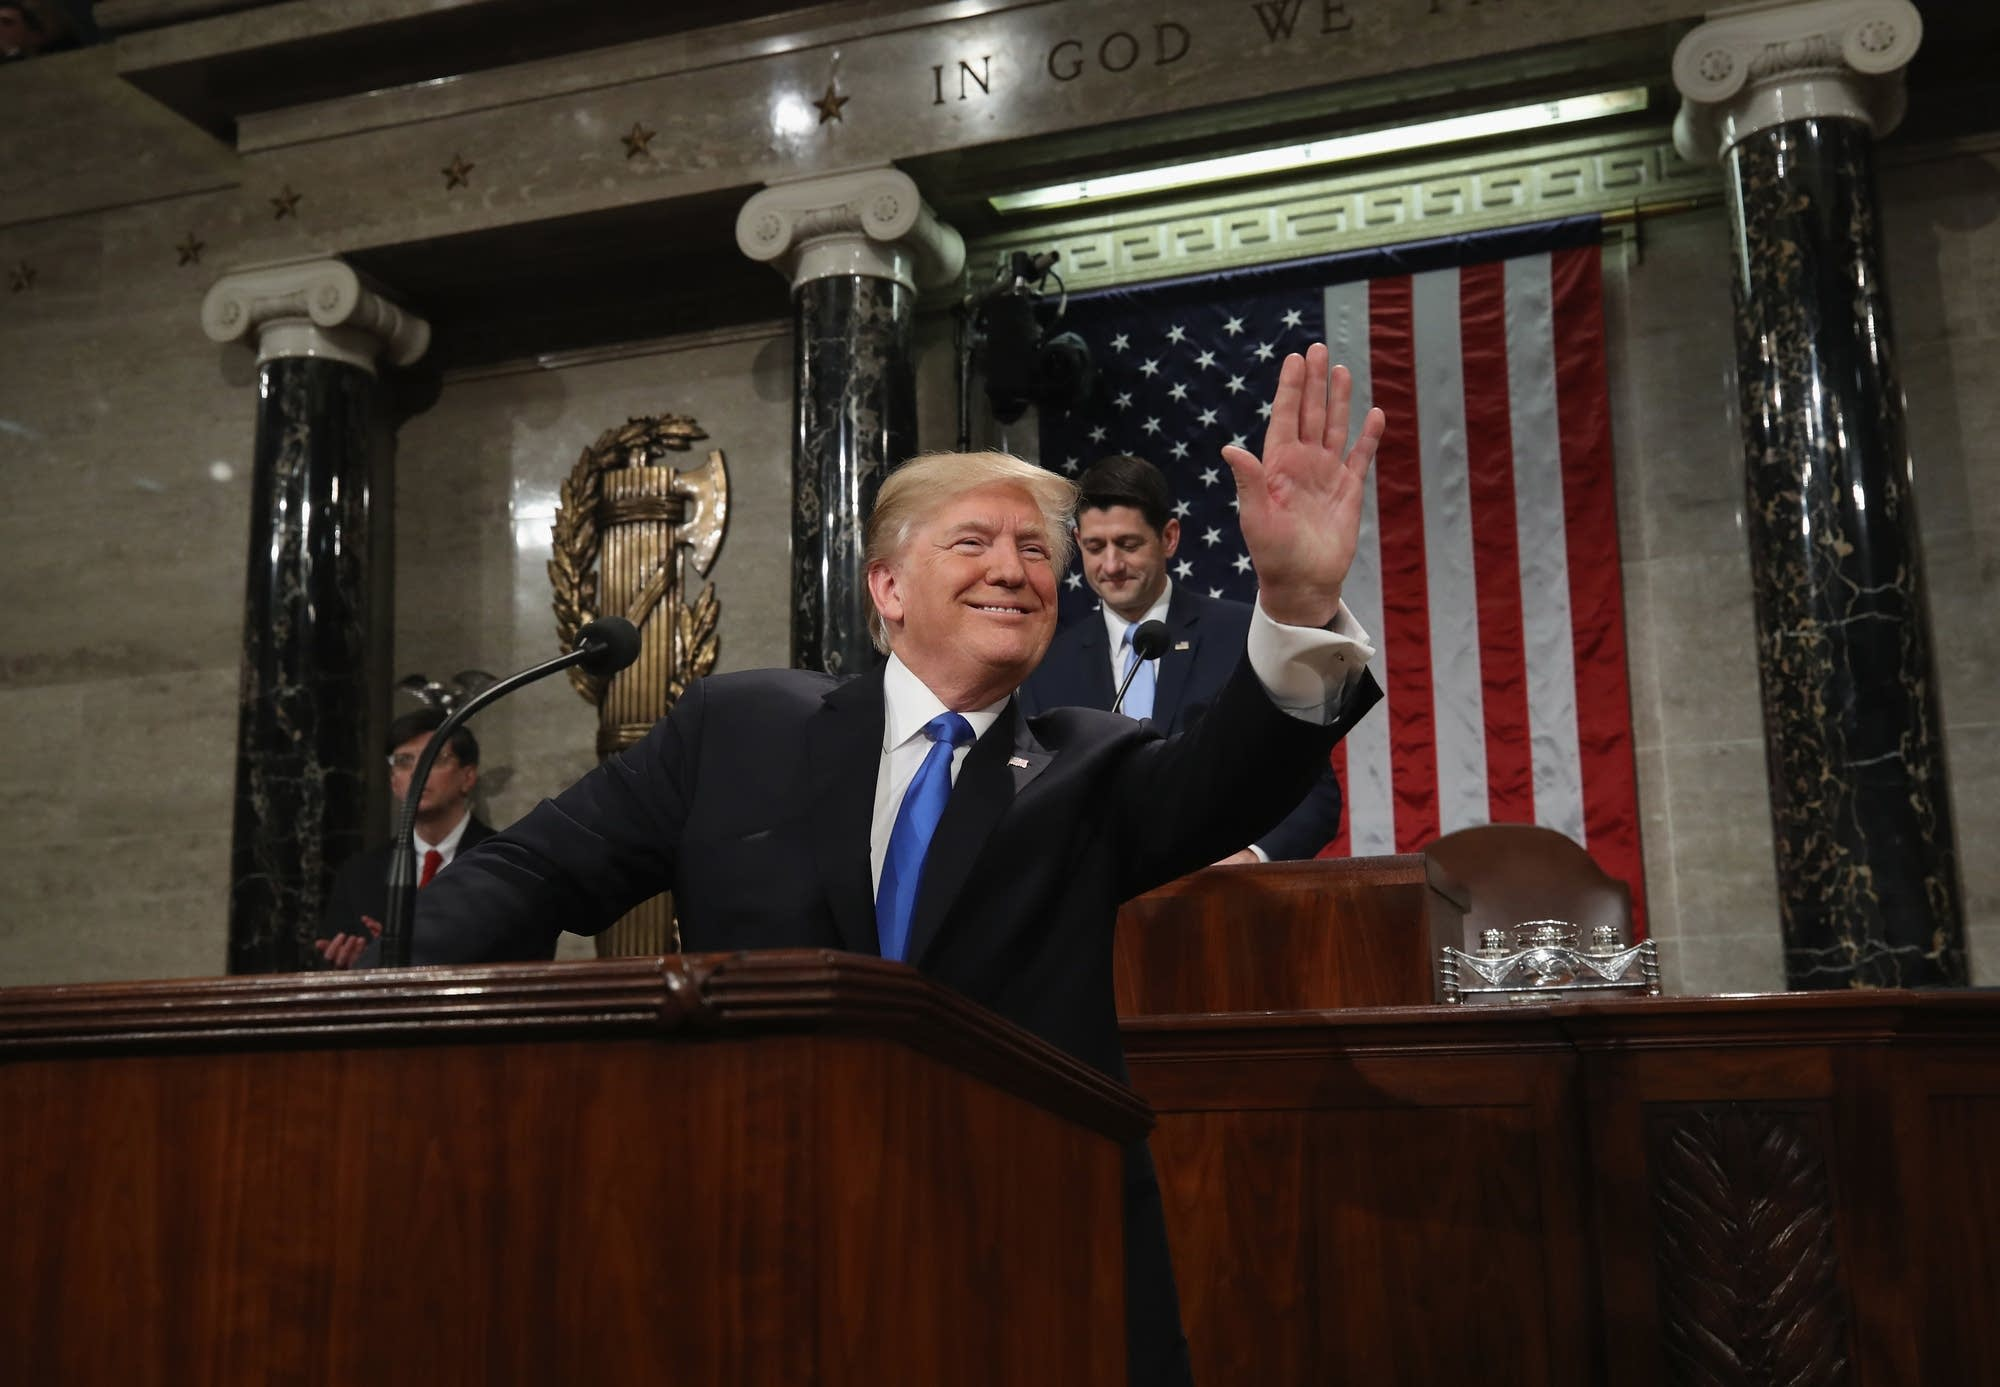 Donald Trump waves as he arrives during the State of the Union address